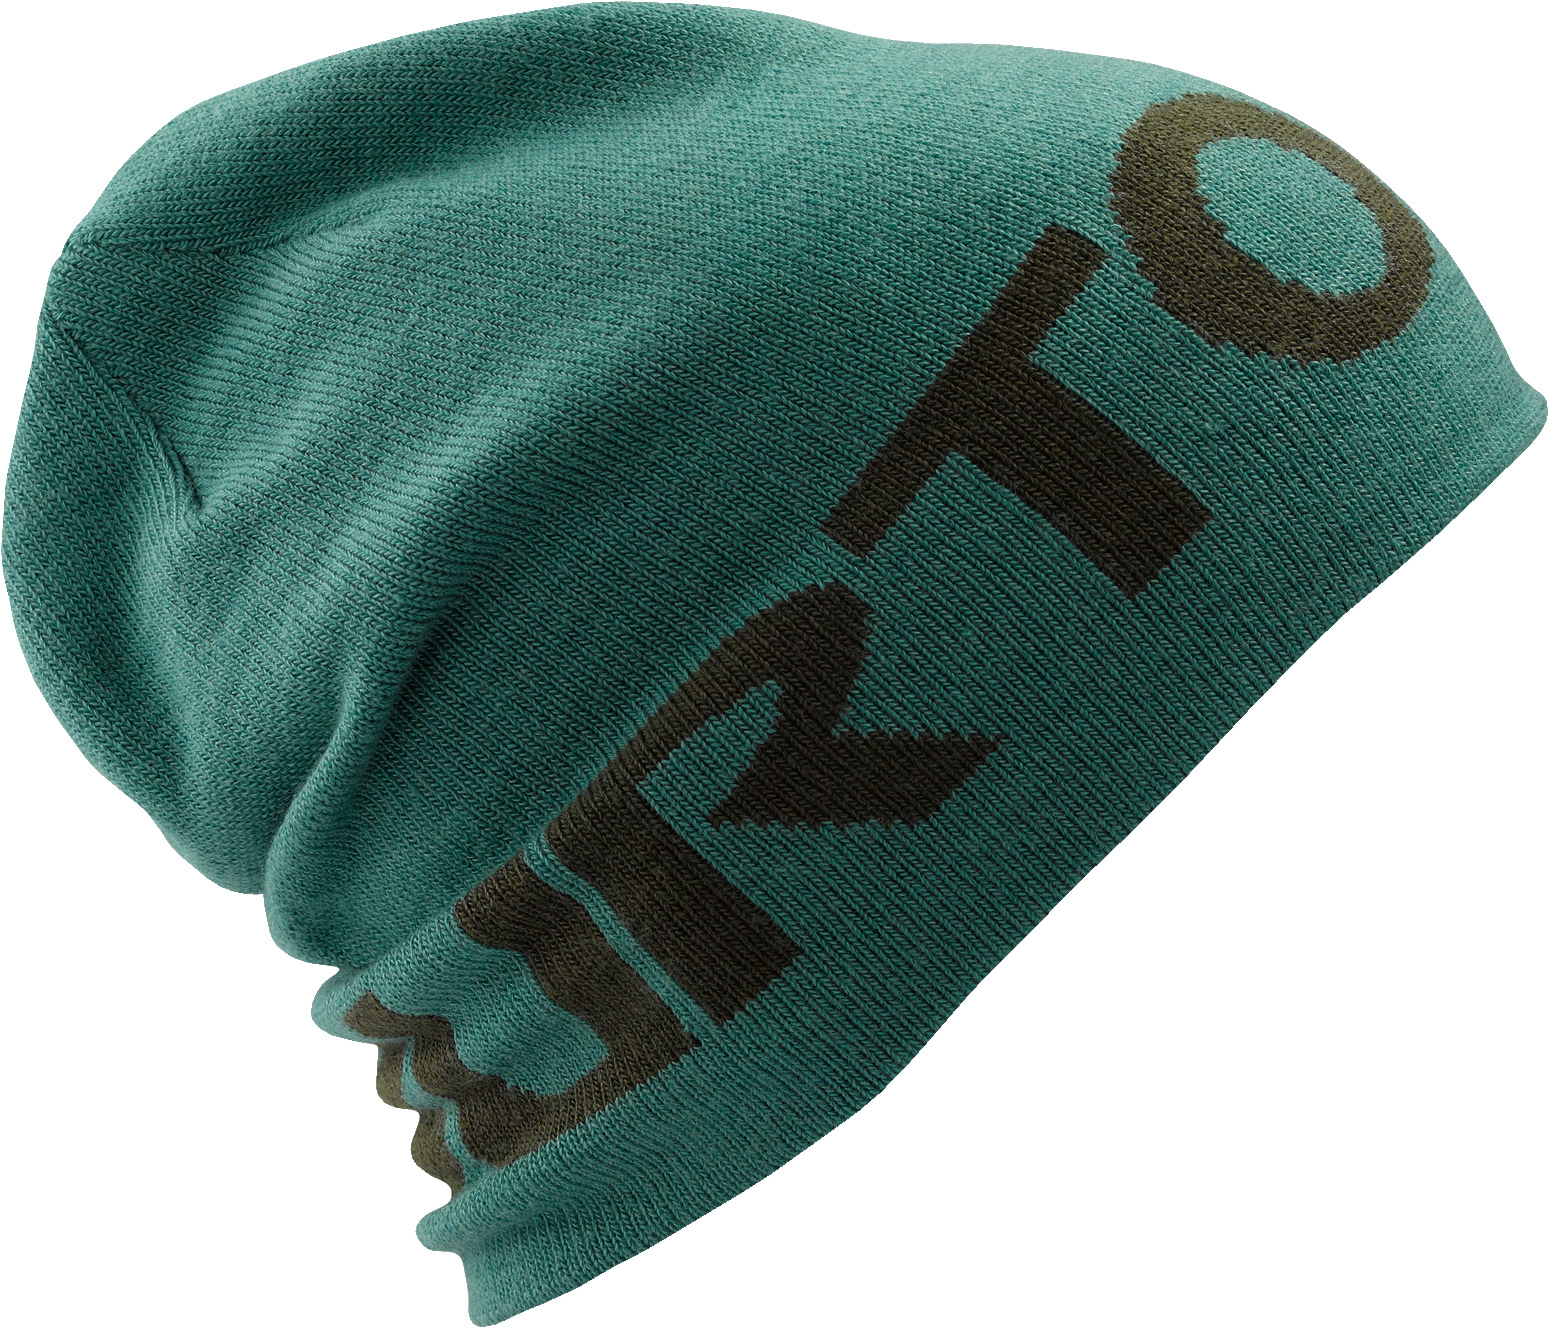 Snowboard Key Features of the Burton Billboard Slouch Beanie: 100% Acrylic Reversible Beanie in Solid Jacquard Slouch Fit - $20.00